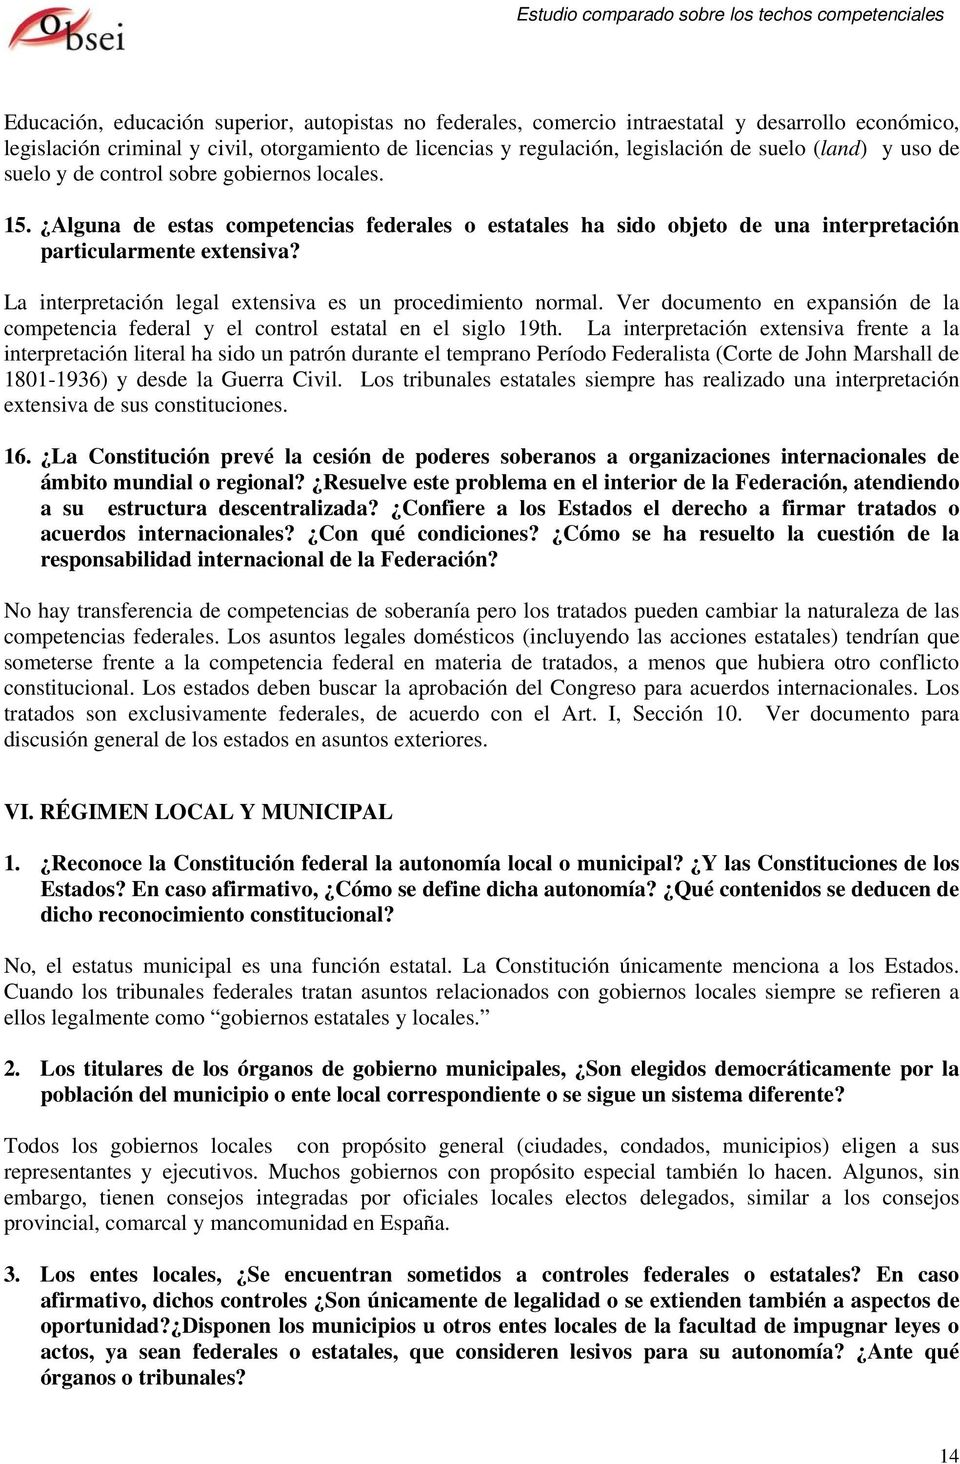 La interpretación legal extensiva es un procedimiento normal. Ver documento en expansión de la competencia federal y el control estatal en el siglo 19th.